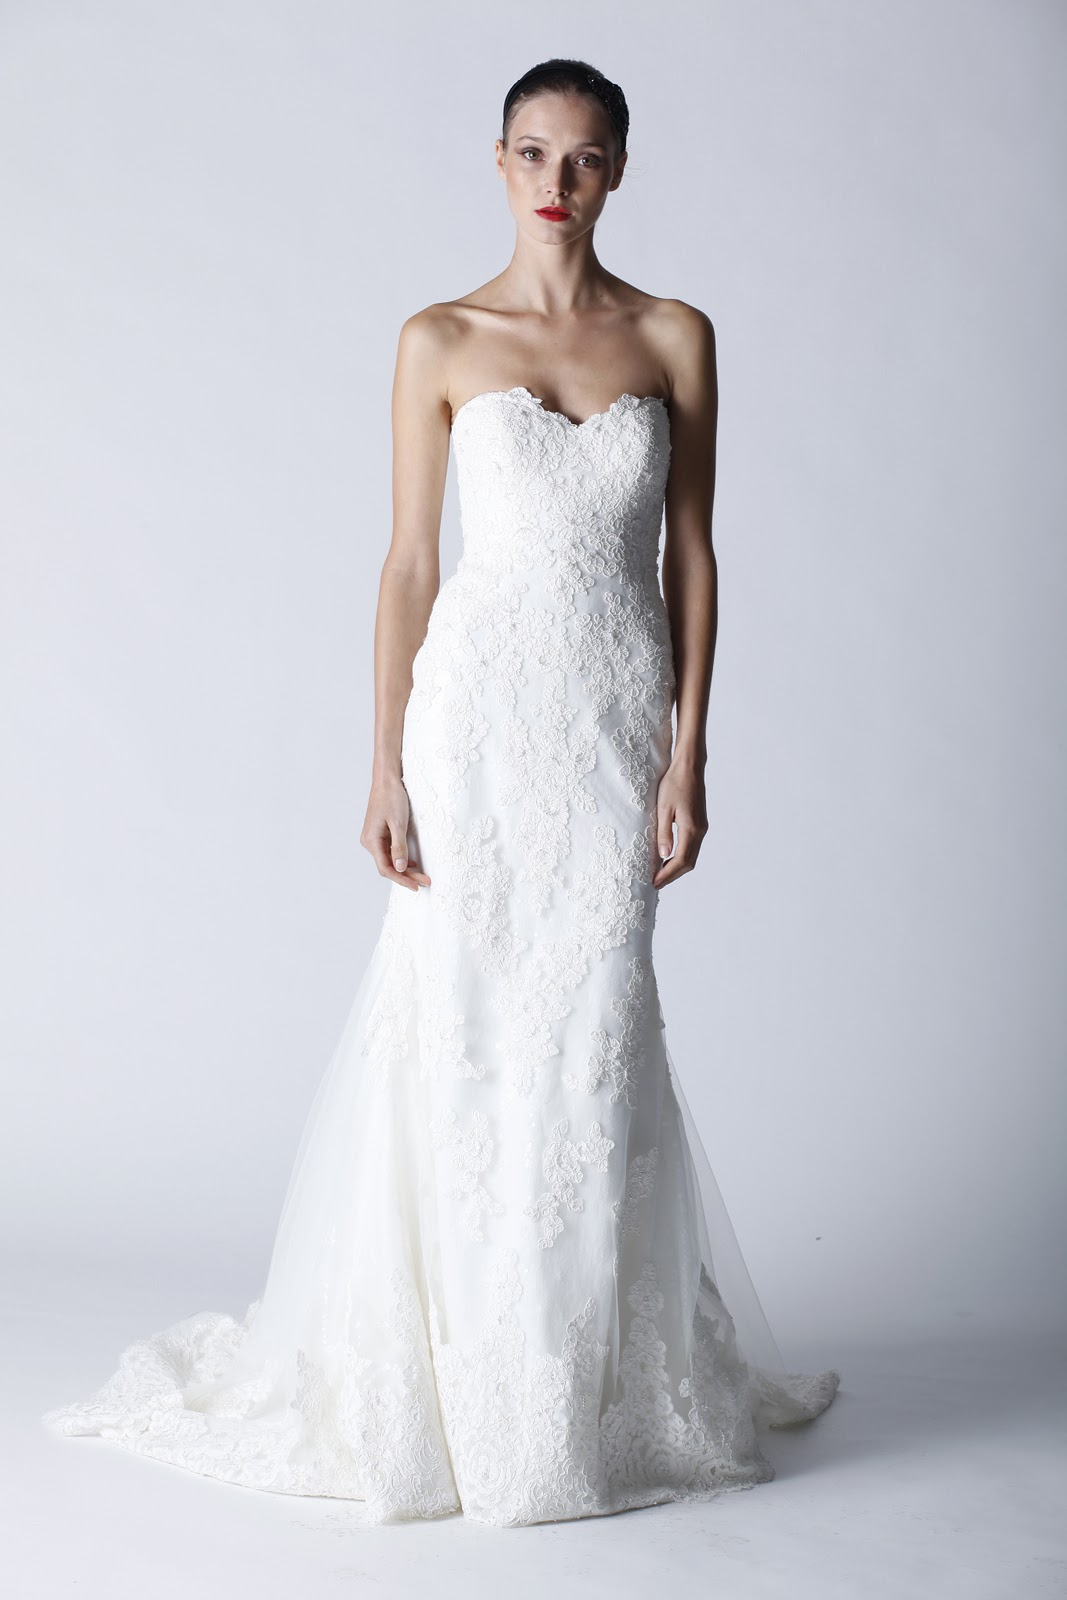 The Blushing Blog: New 2012 gowns from Priscilla of Boston!